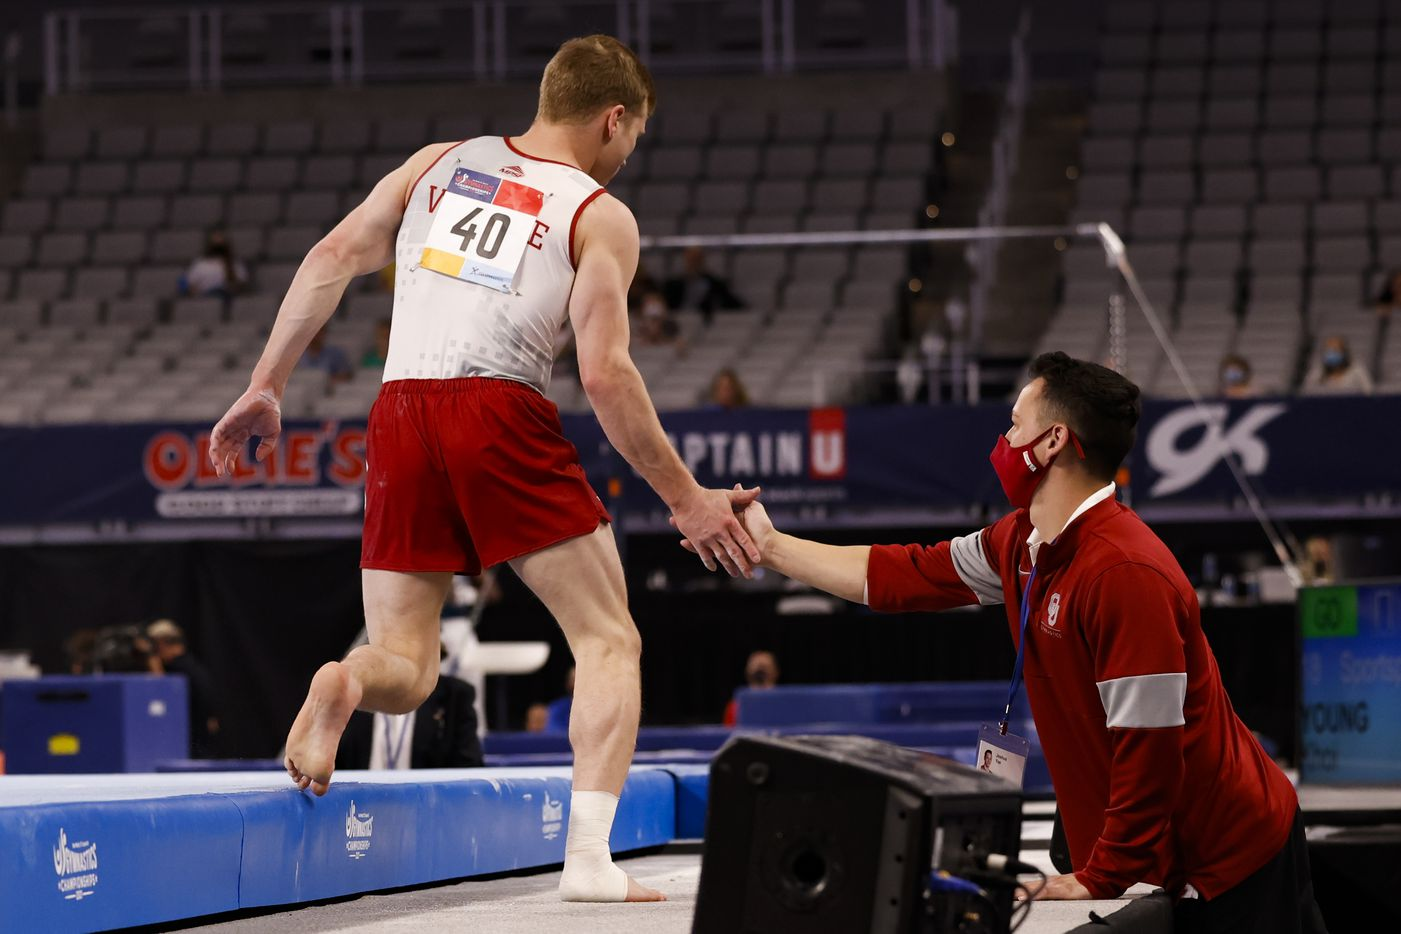 University of Oklahoma's Matt Wenske high fives assistant coach Josh Yee after completing the floor routine during Day 1 of the US gymnastics championships on Thursday, June 3, 2021, at Dickies Arena in Fort Worth. (Juan Figueroa/The Dallas Morning News)